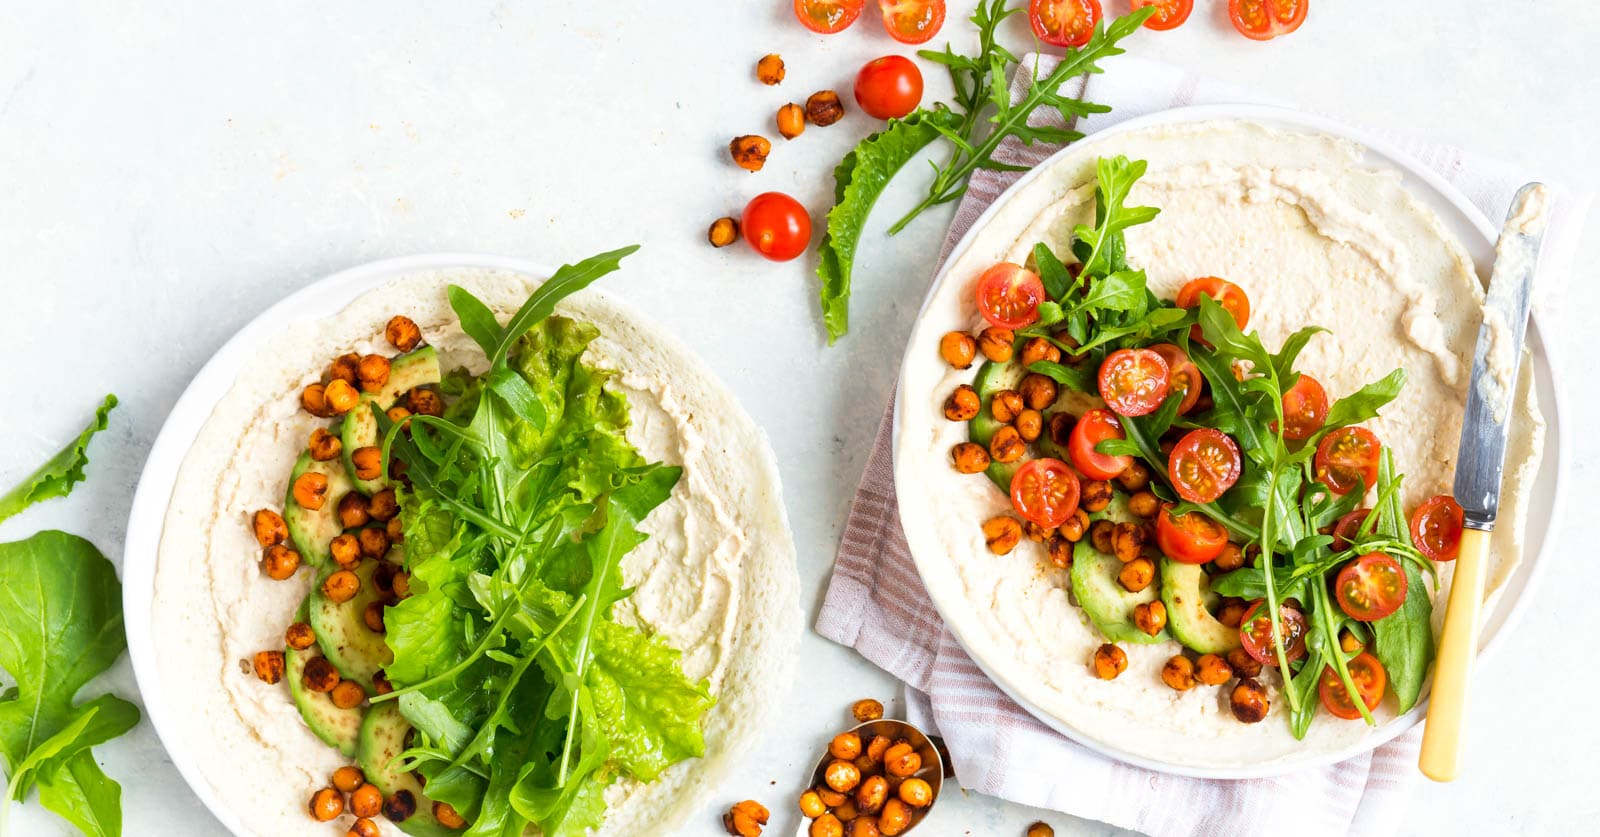 Overhead shot of gluten free veggie wraps on a white surface. The veggie wraps consist of thin crepes, hummus, lettuce leaves, cherry tomatoes and spicy chickpeas.